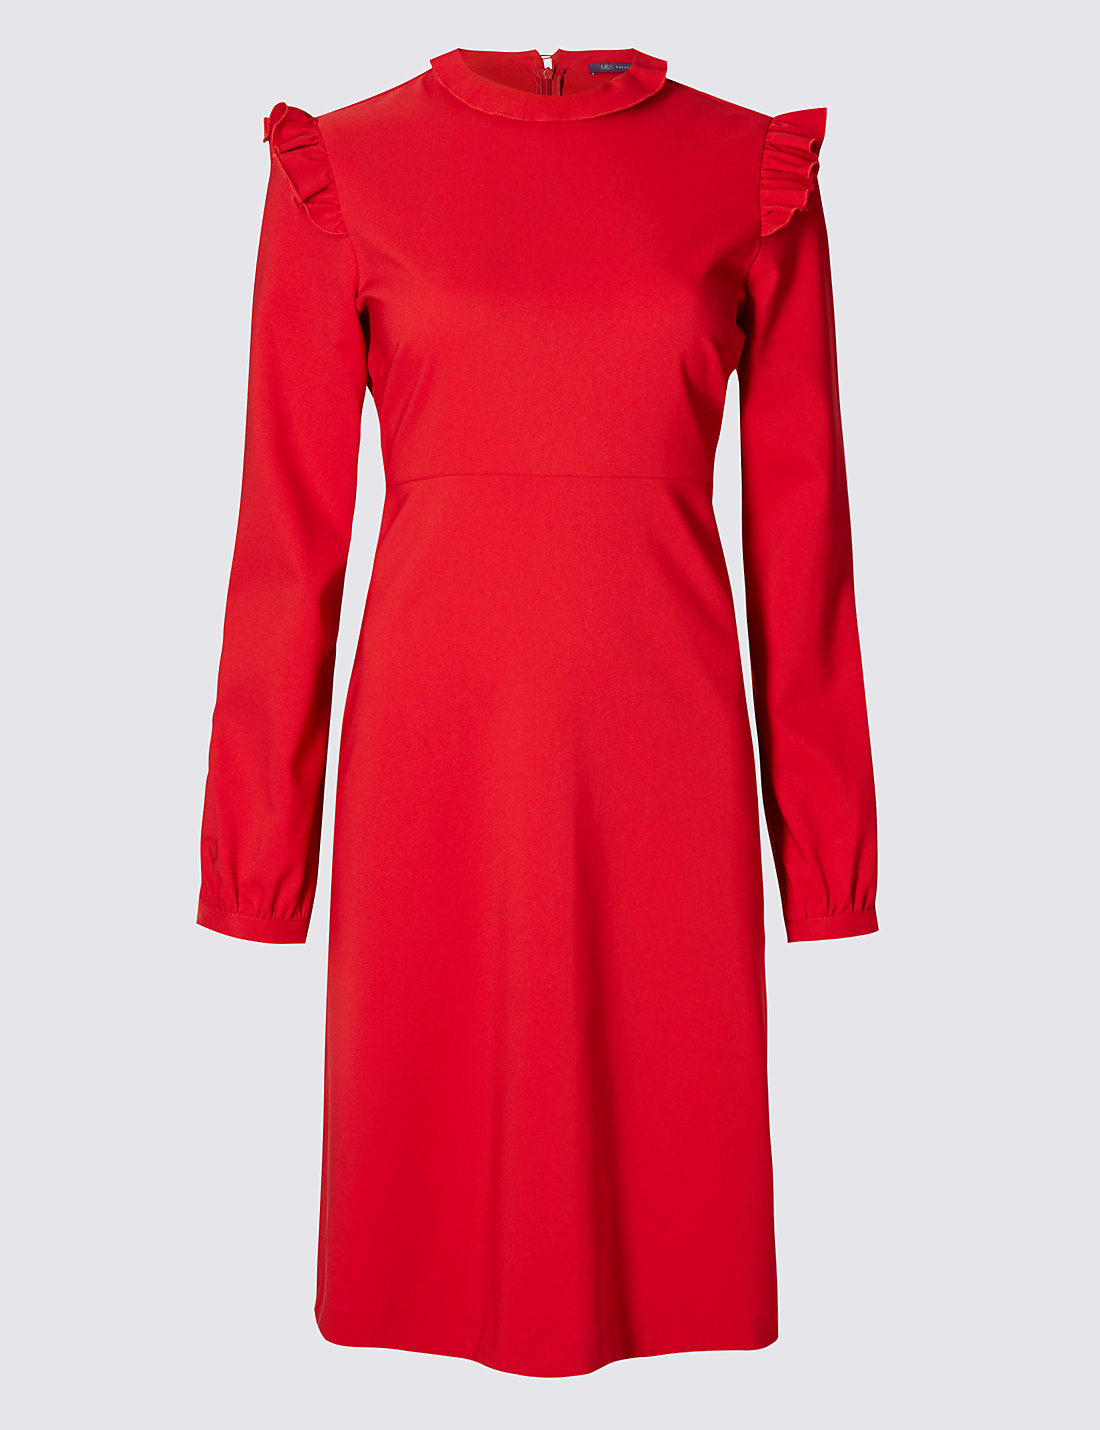 M&S COLLECTION High Neck Ruffle Long Sleeve Swing Dress £39.50 Click to visit M&S